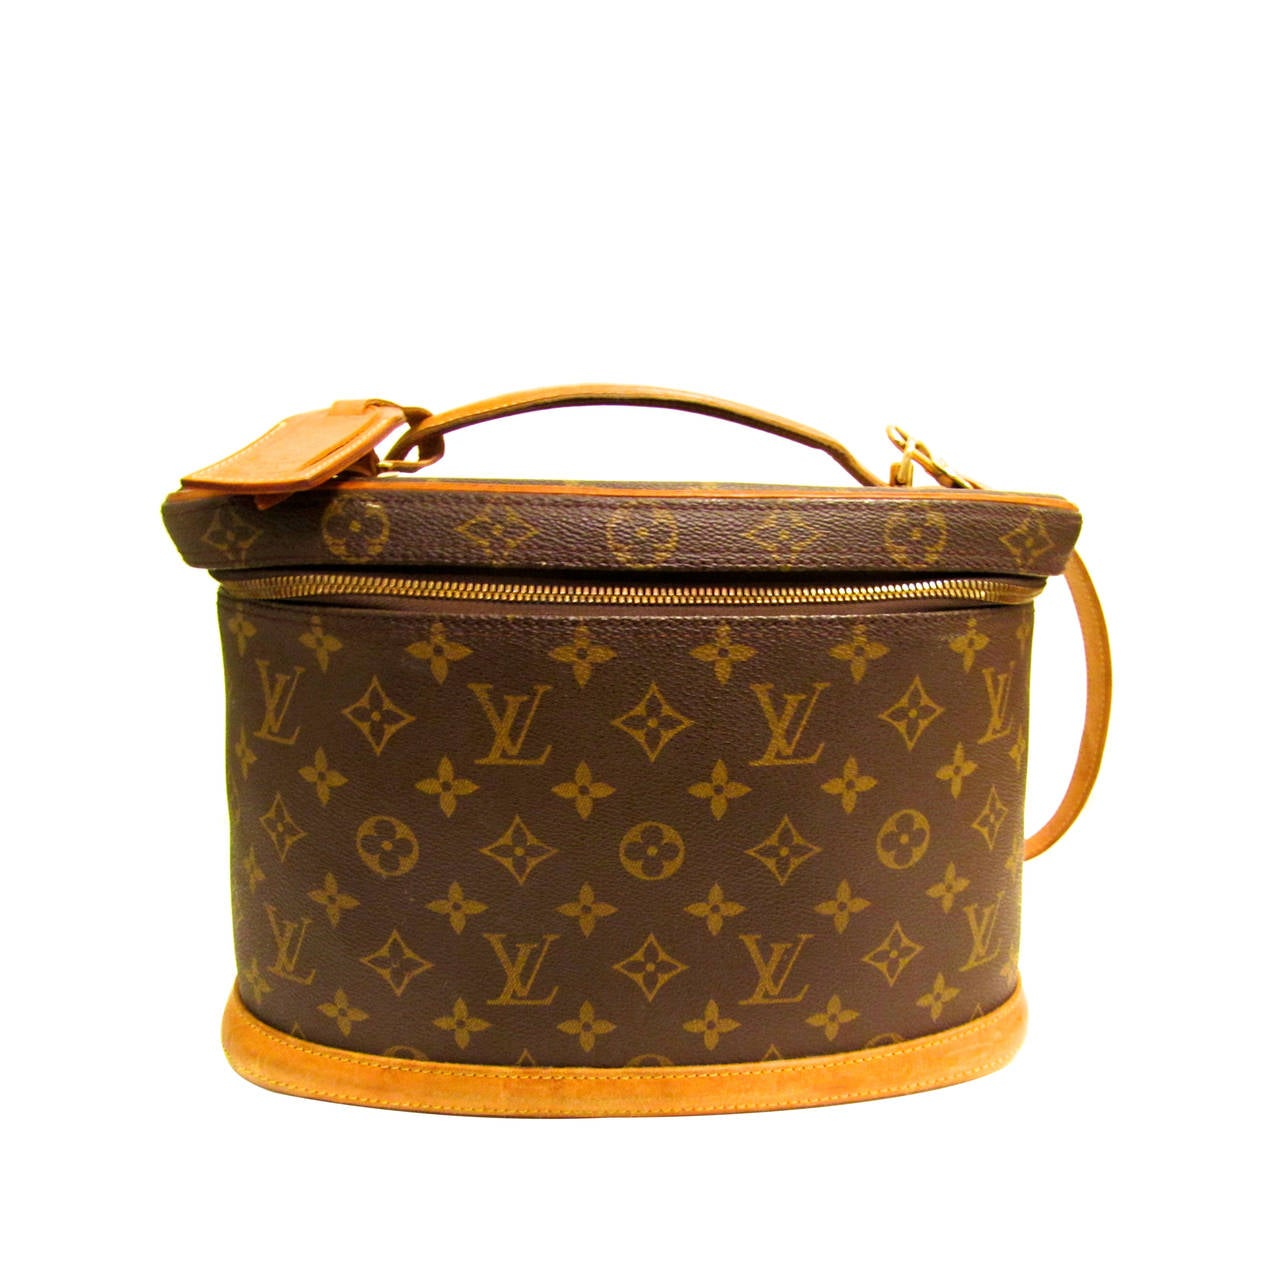 louis vuitton case A vintage louis vuitton monogram canvas hard-sided cosmetic case this bag in coated canvas signature print has vechetta leather trims, top handle, and adjustable.